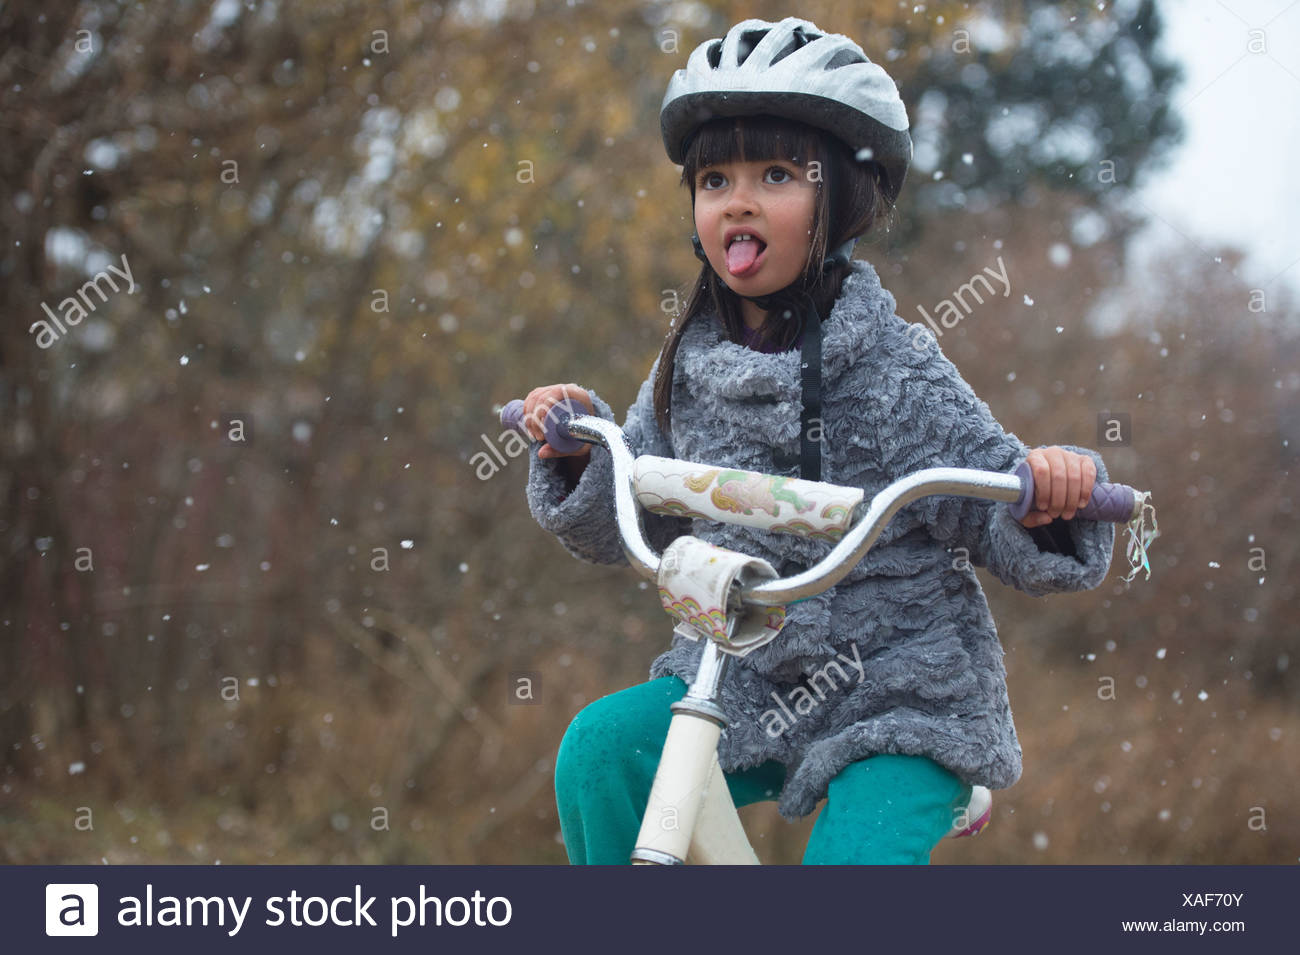 A girl rides her bike in the year's first snow fall. - Stock Image